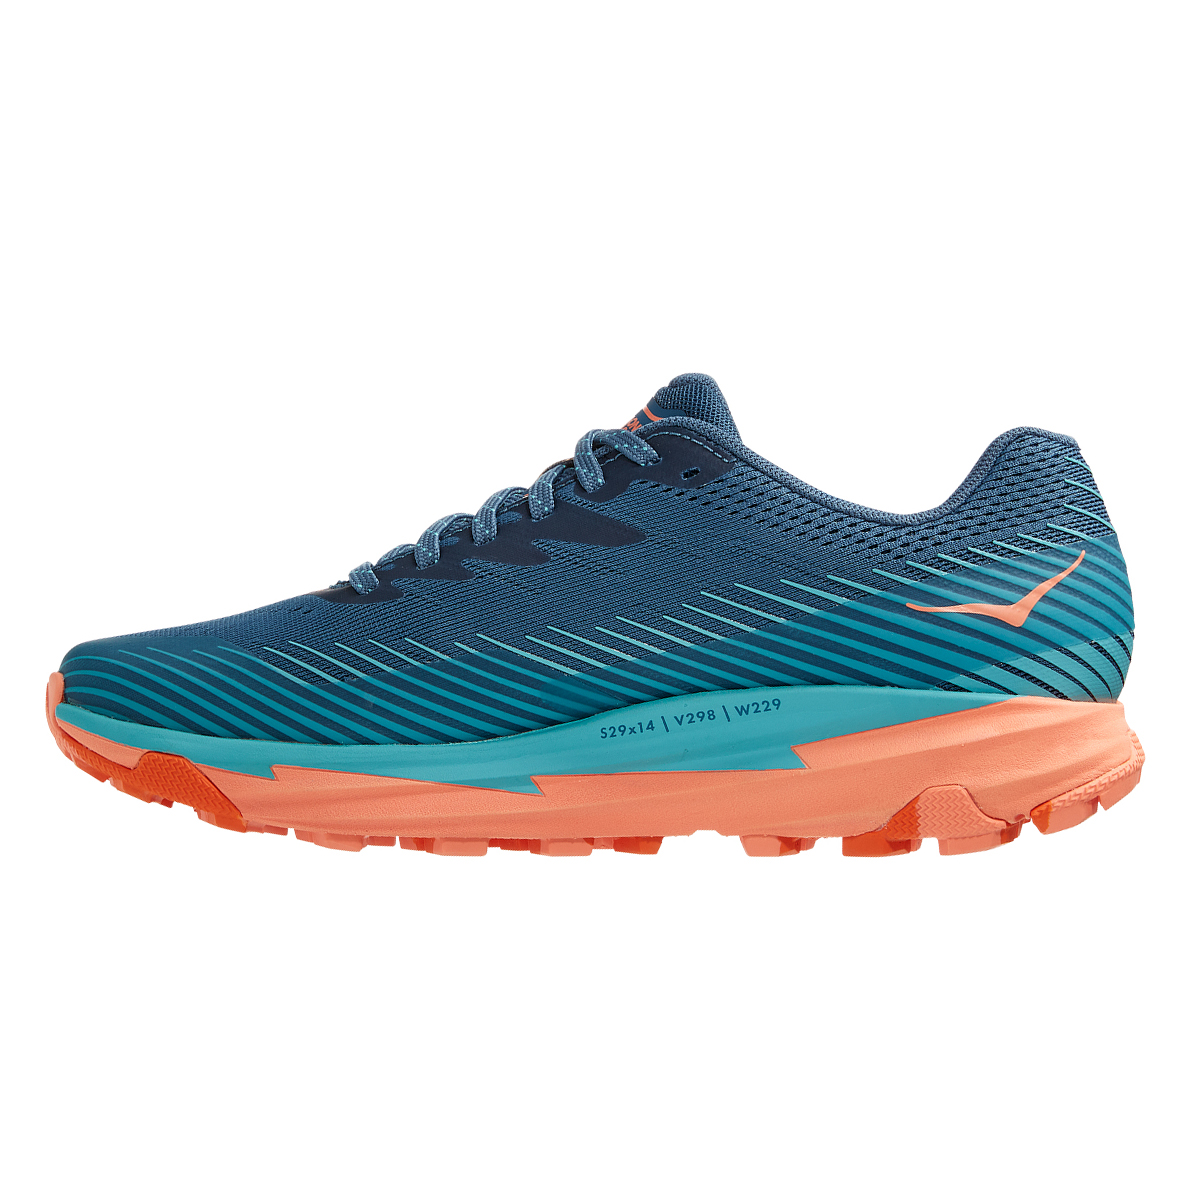 Women's Hoka One One Torrent 2 Trail Running Shoe - Color: Real Teal / Cantaloupe - Size: 5 - Width: Regular, Real Teal / Cantaloupe, large, image 2